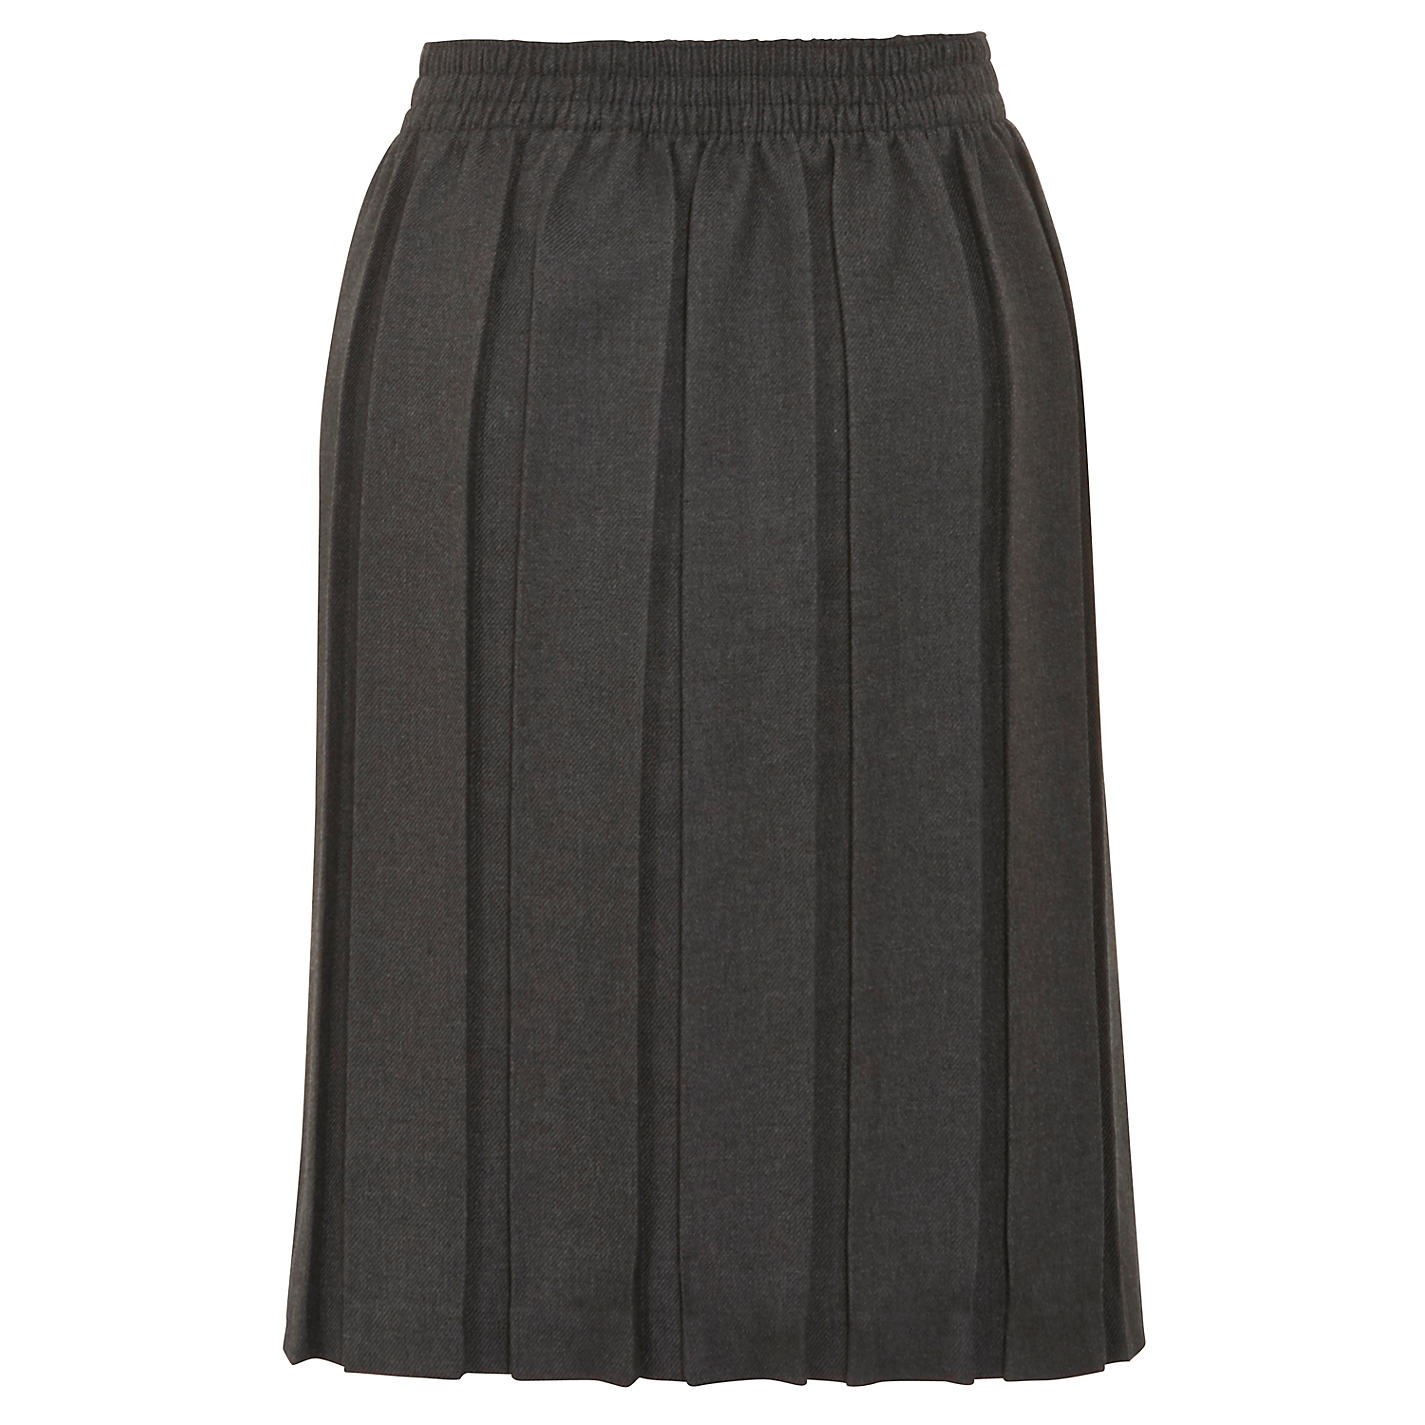 Short grey pleated school skirt – Modern skirts blog for you